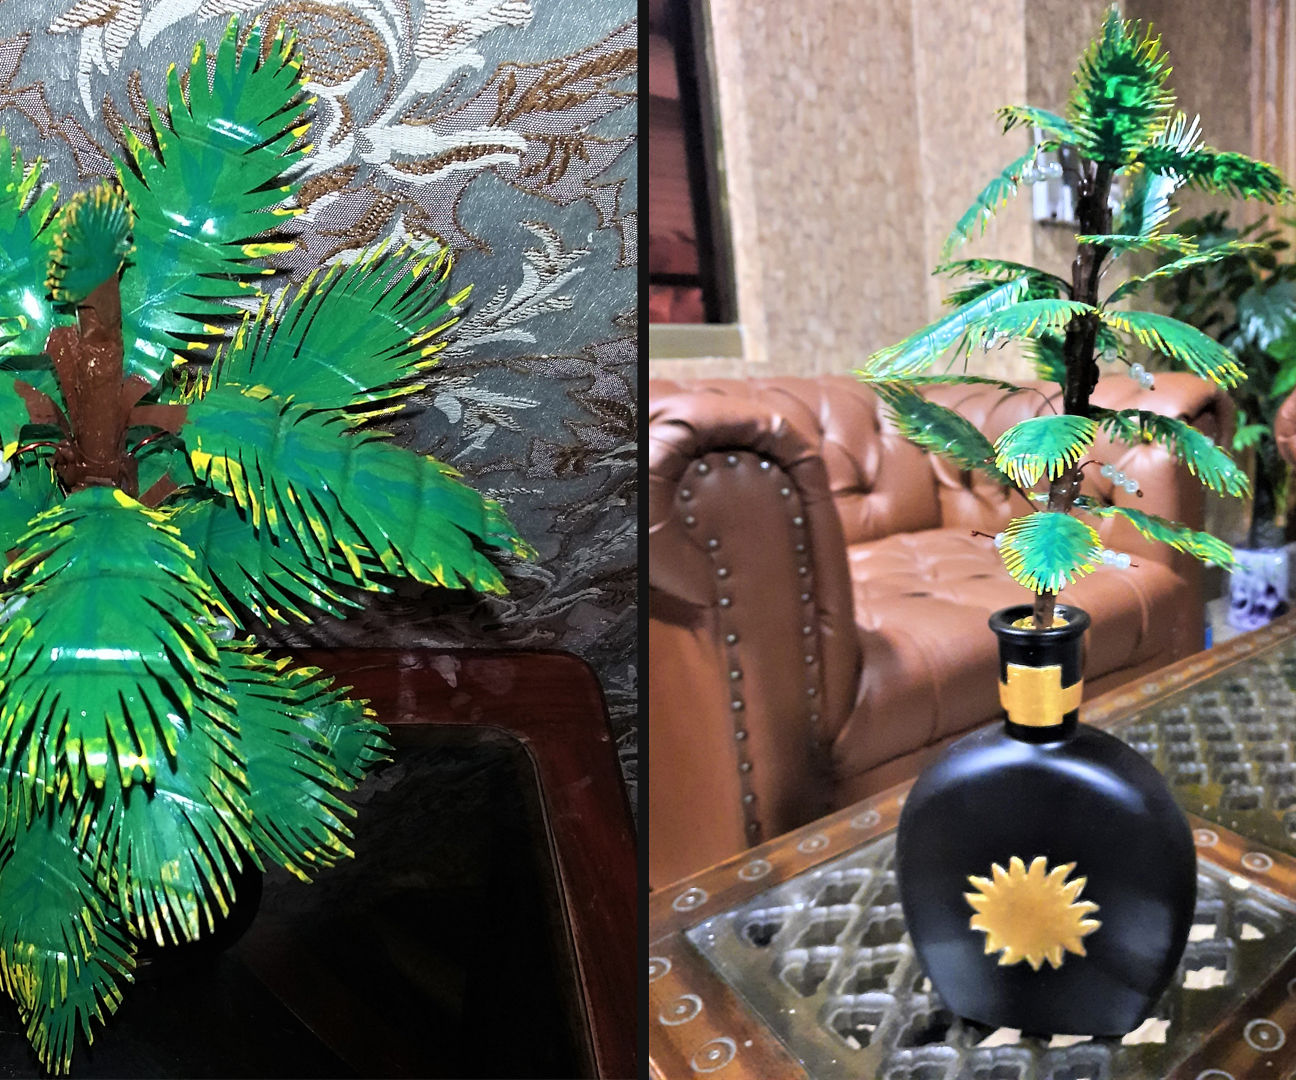 How to Make Artificial Tree From Plastic Bottle|DIY Tree From Wine Bottle|Easy Art & Craft Tutorial Tree